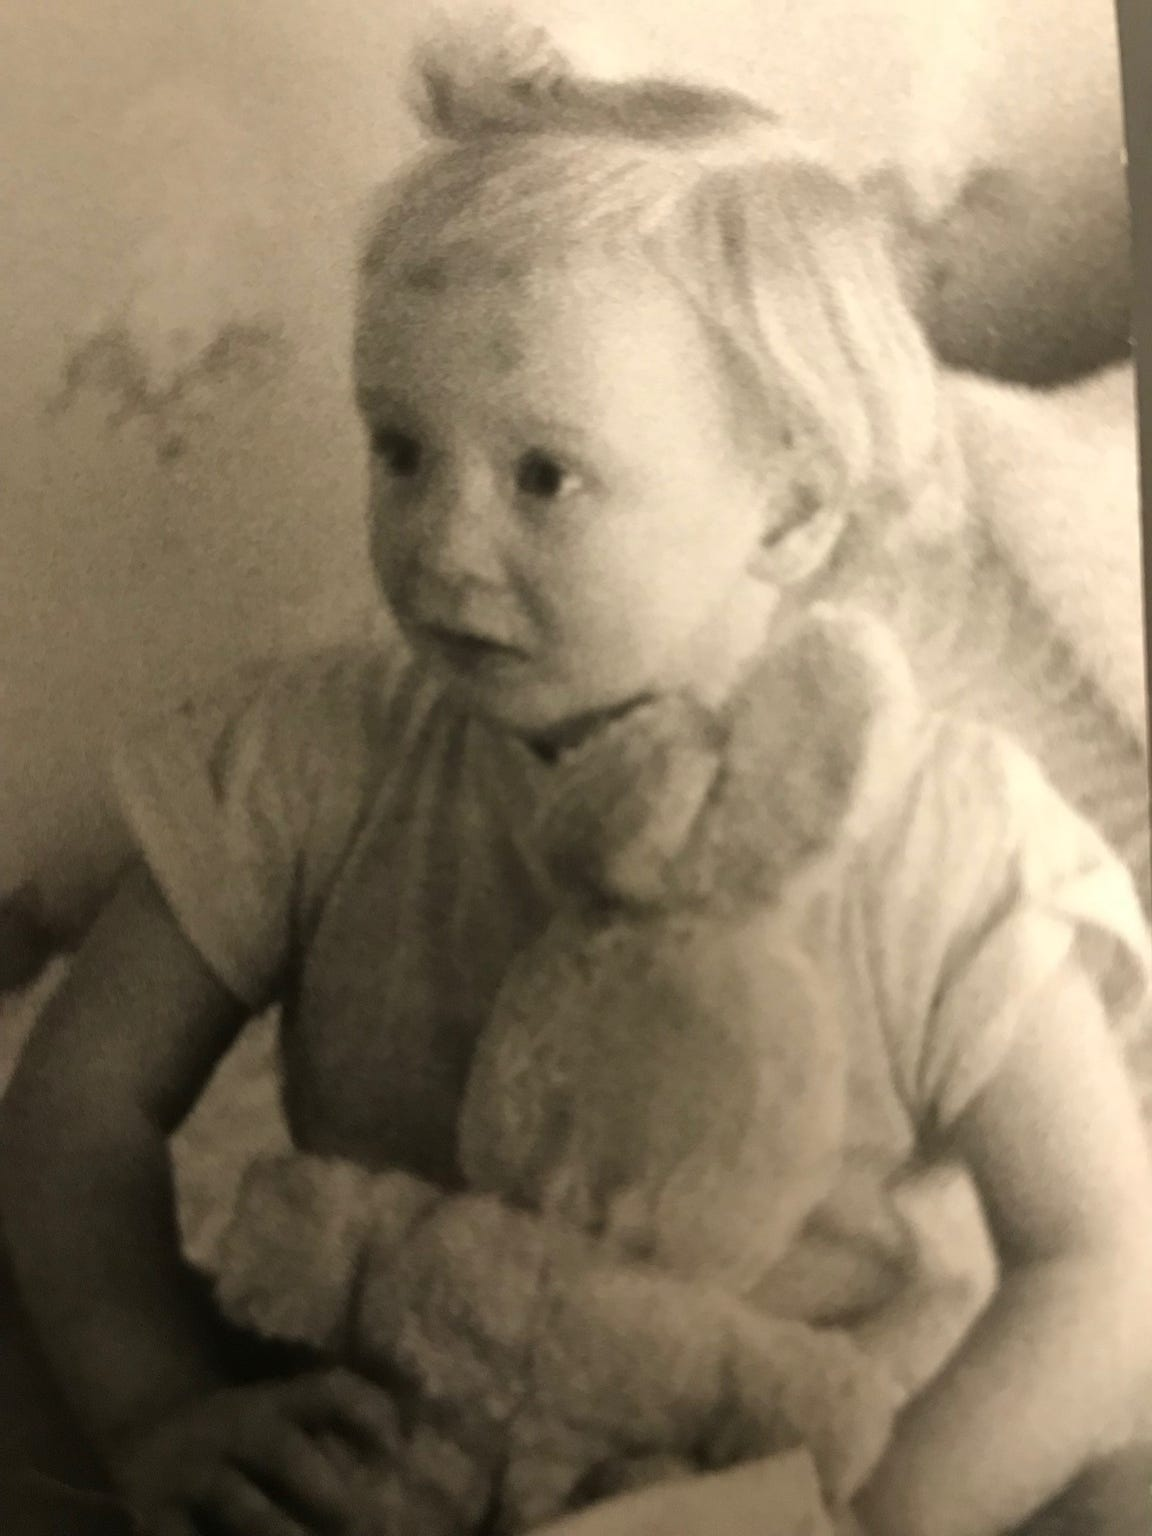 Elizabeth Duncan's 3-year-old daughter clutches her stuffed bunny after police found her mother shot to death on March 27, 1955. Elizabeth Duncan, along with Goebel Duncan and Raymond Duncan, were the final victims of Evansville serial killer Leslie Irvin.